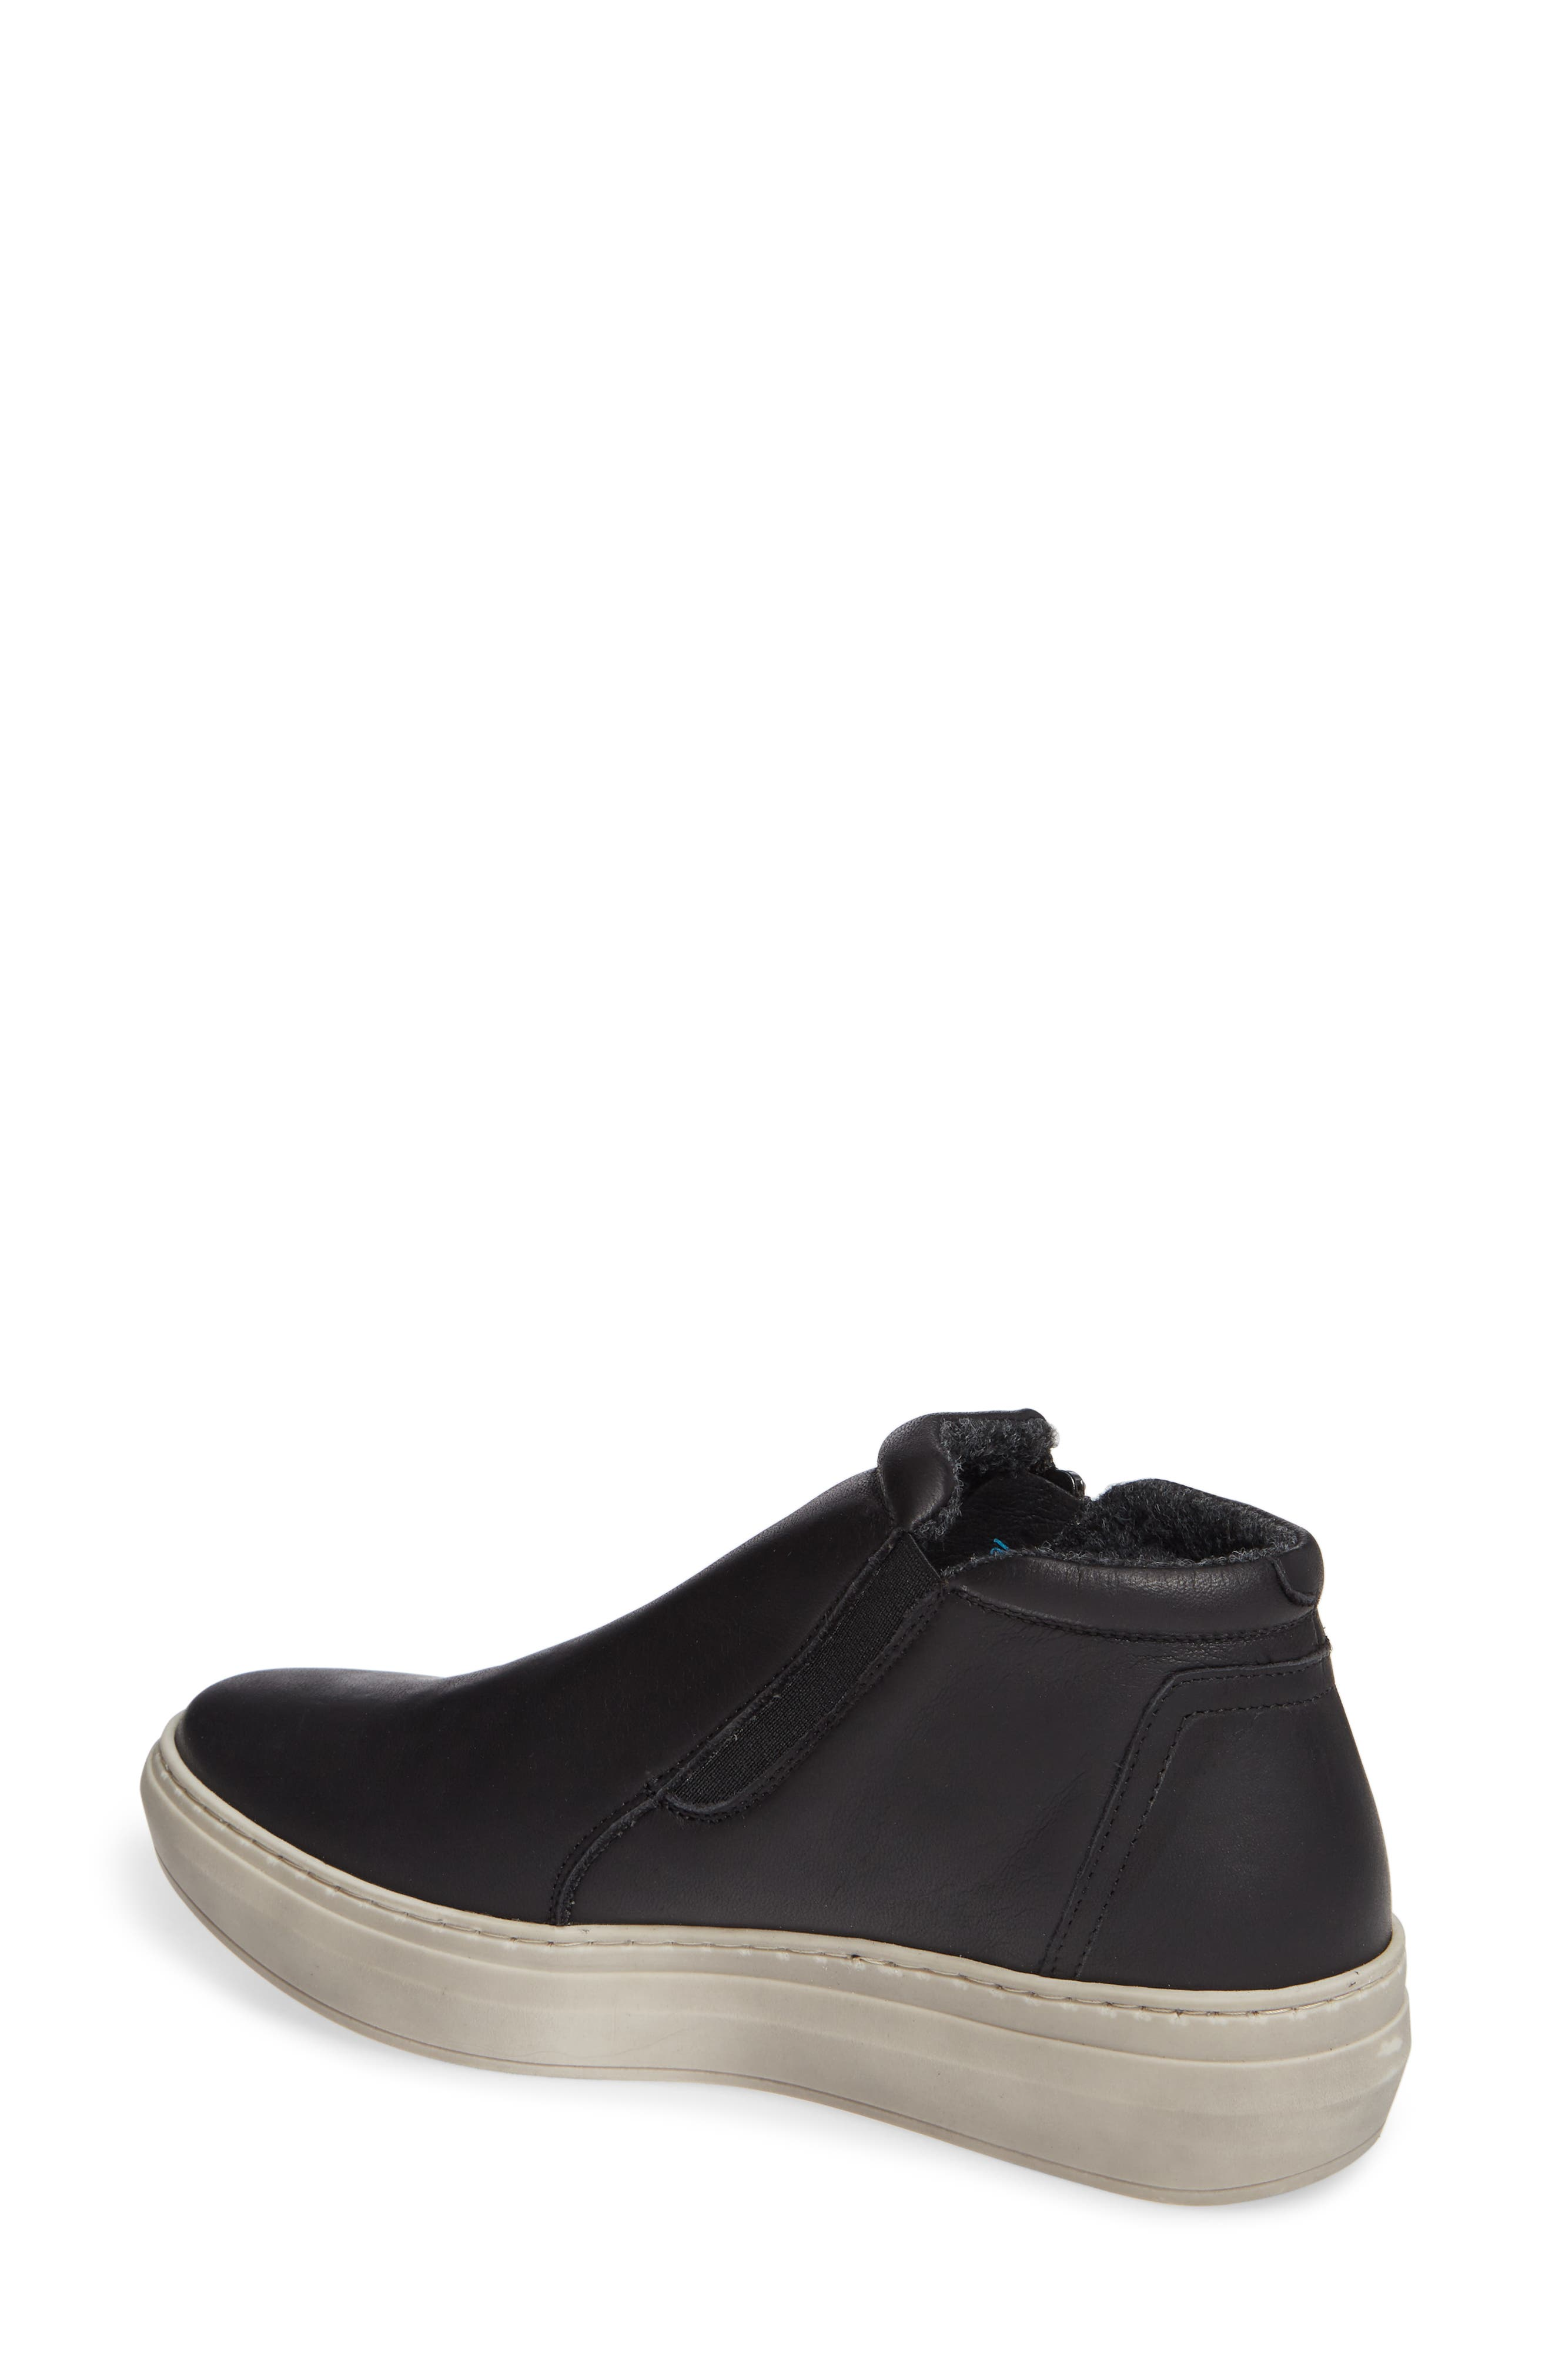 CLOUD,                             Qupid Wool Lined Sneaker,                             Alternate thumbnail 2, color,                             BLACK LEATHER